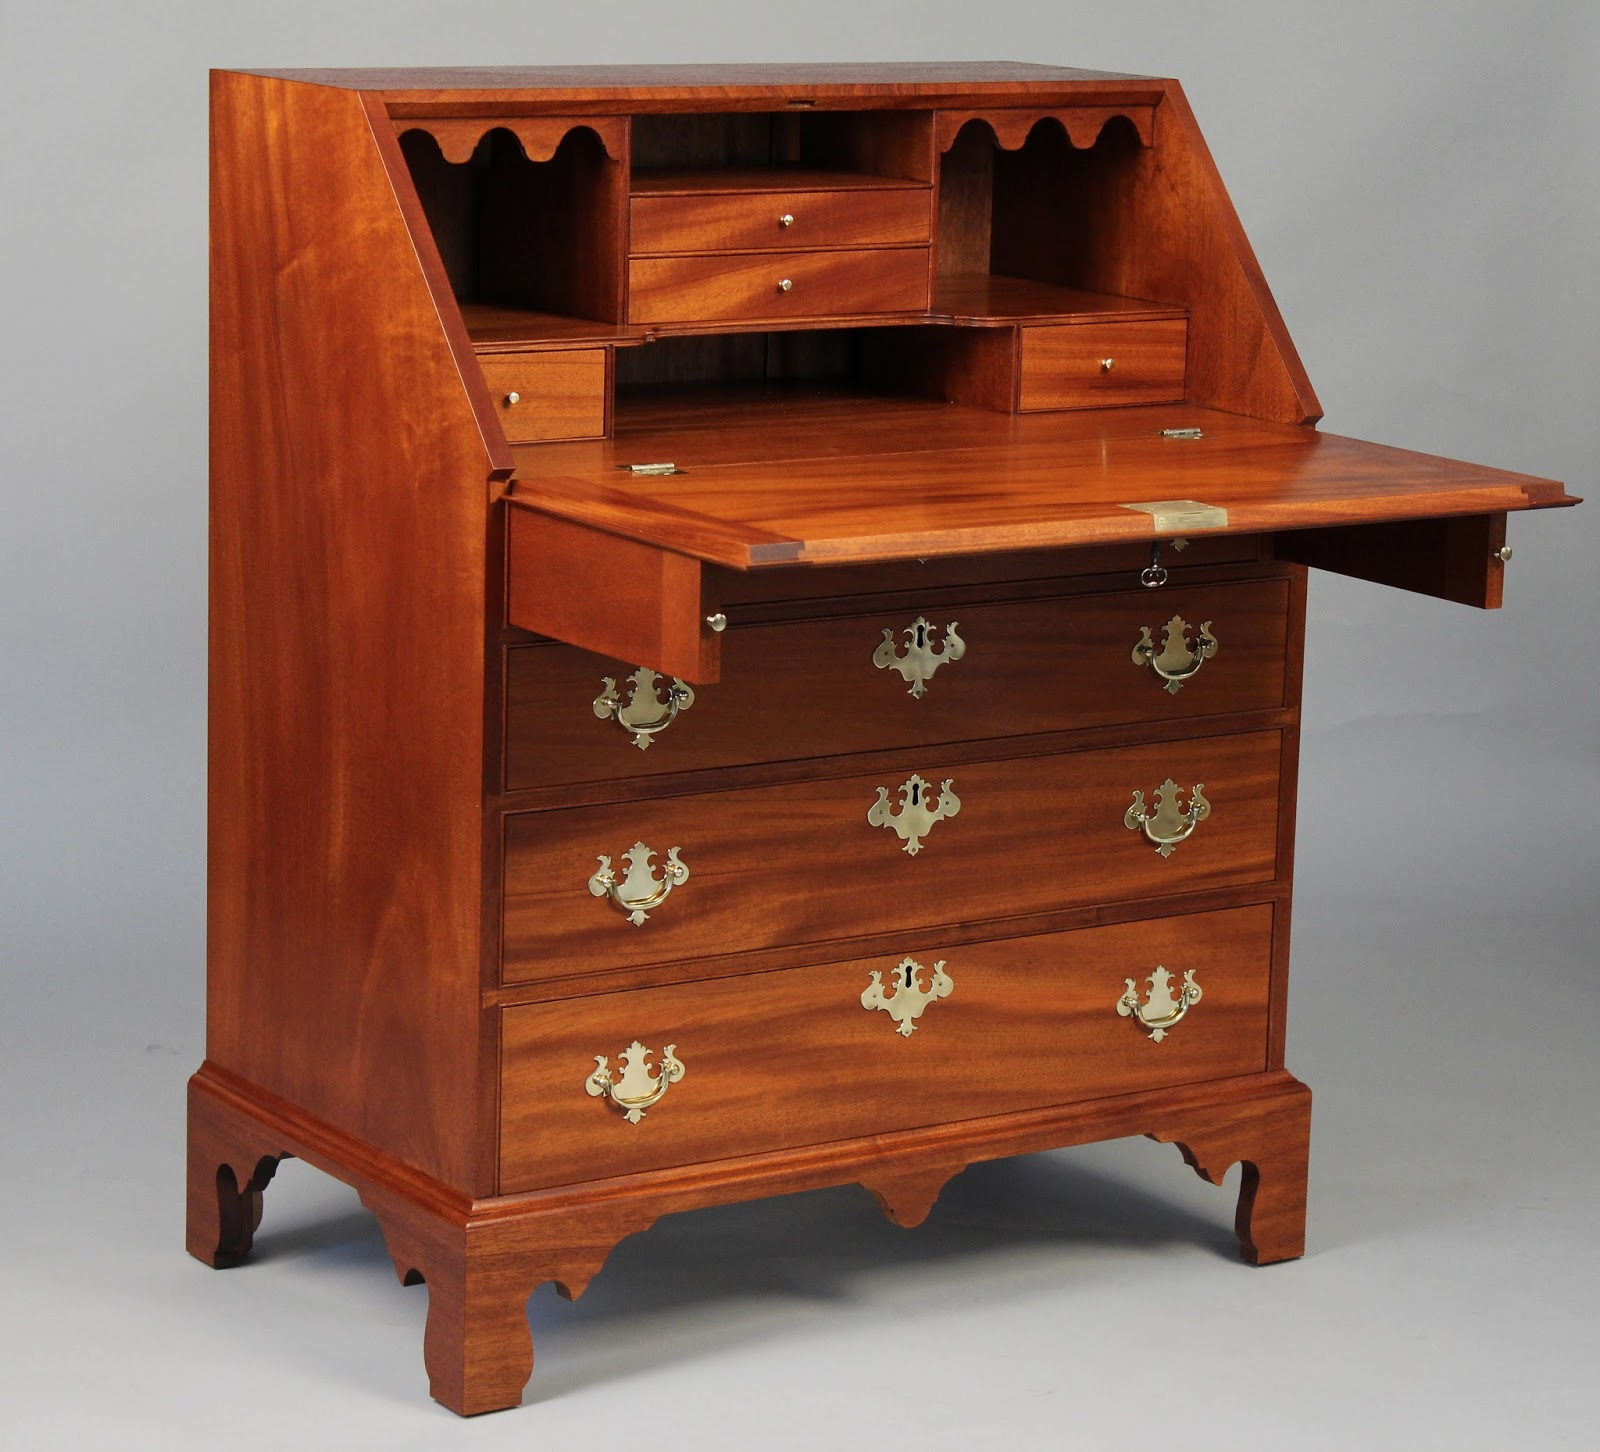 handmade chippendale slant top desk